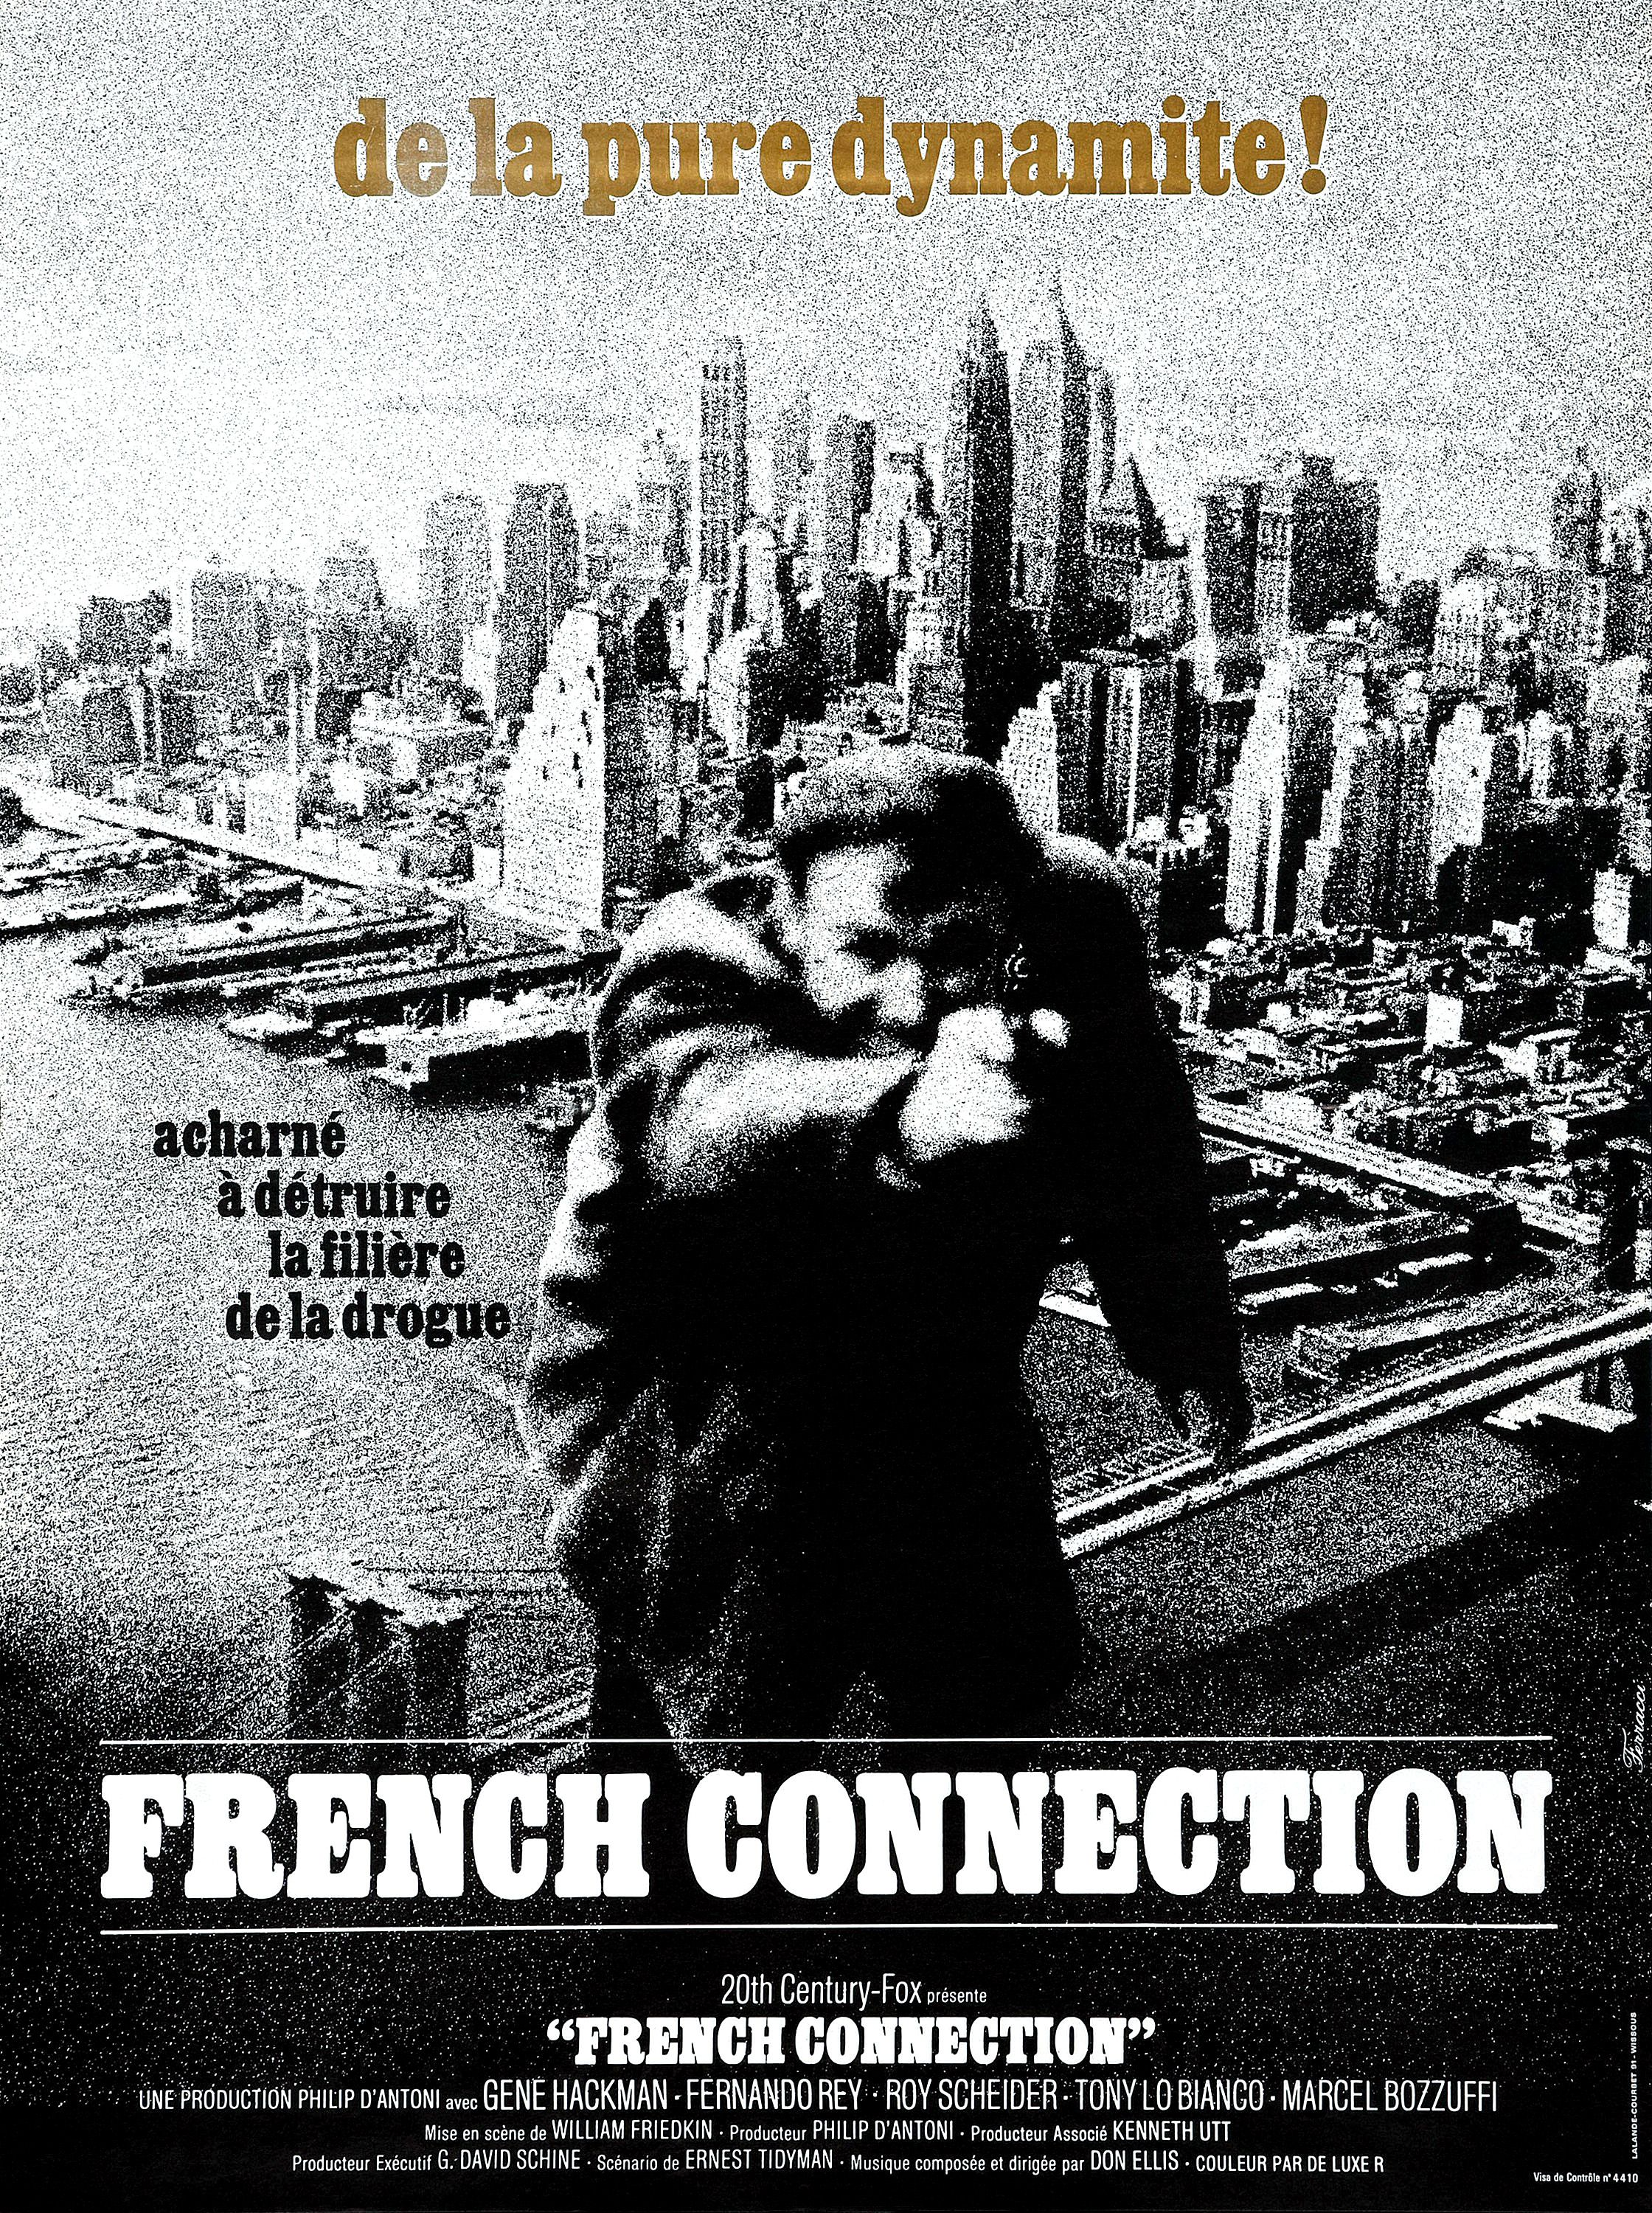 French Connection (film)